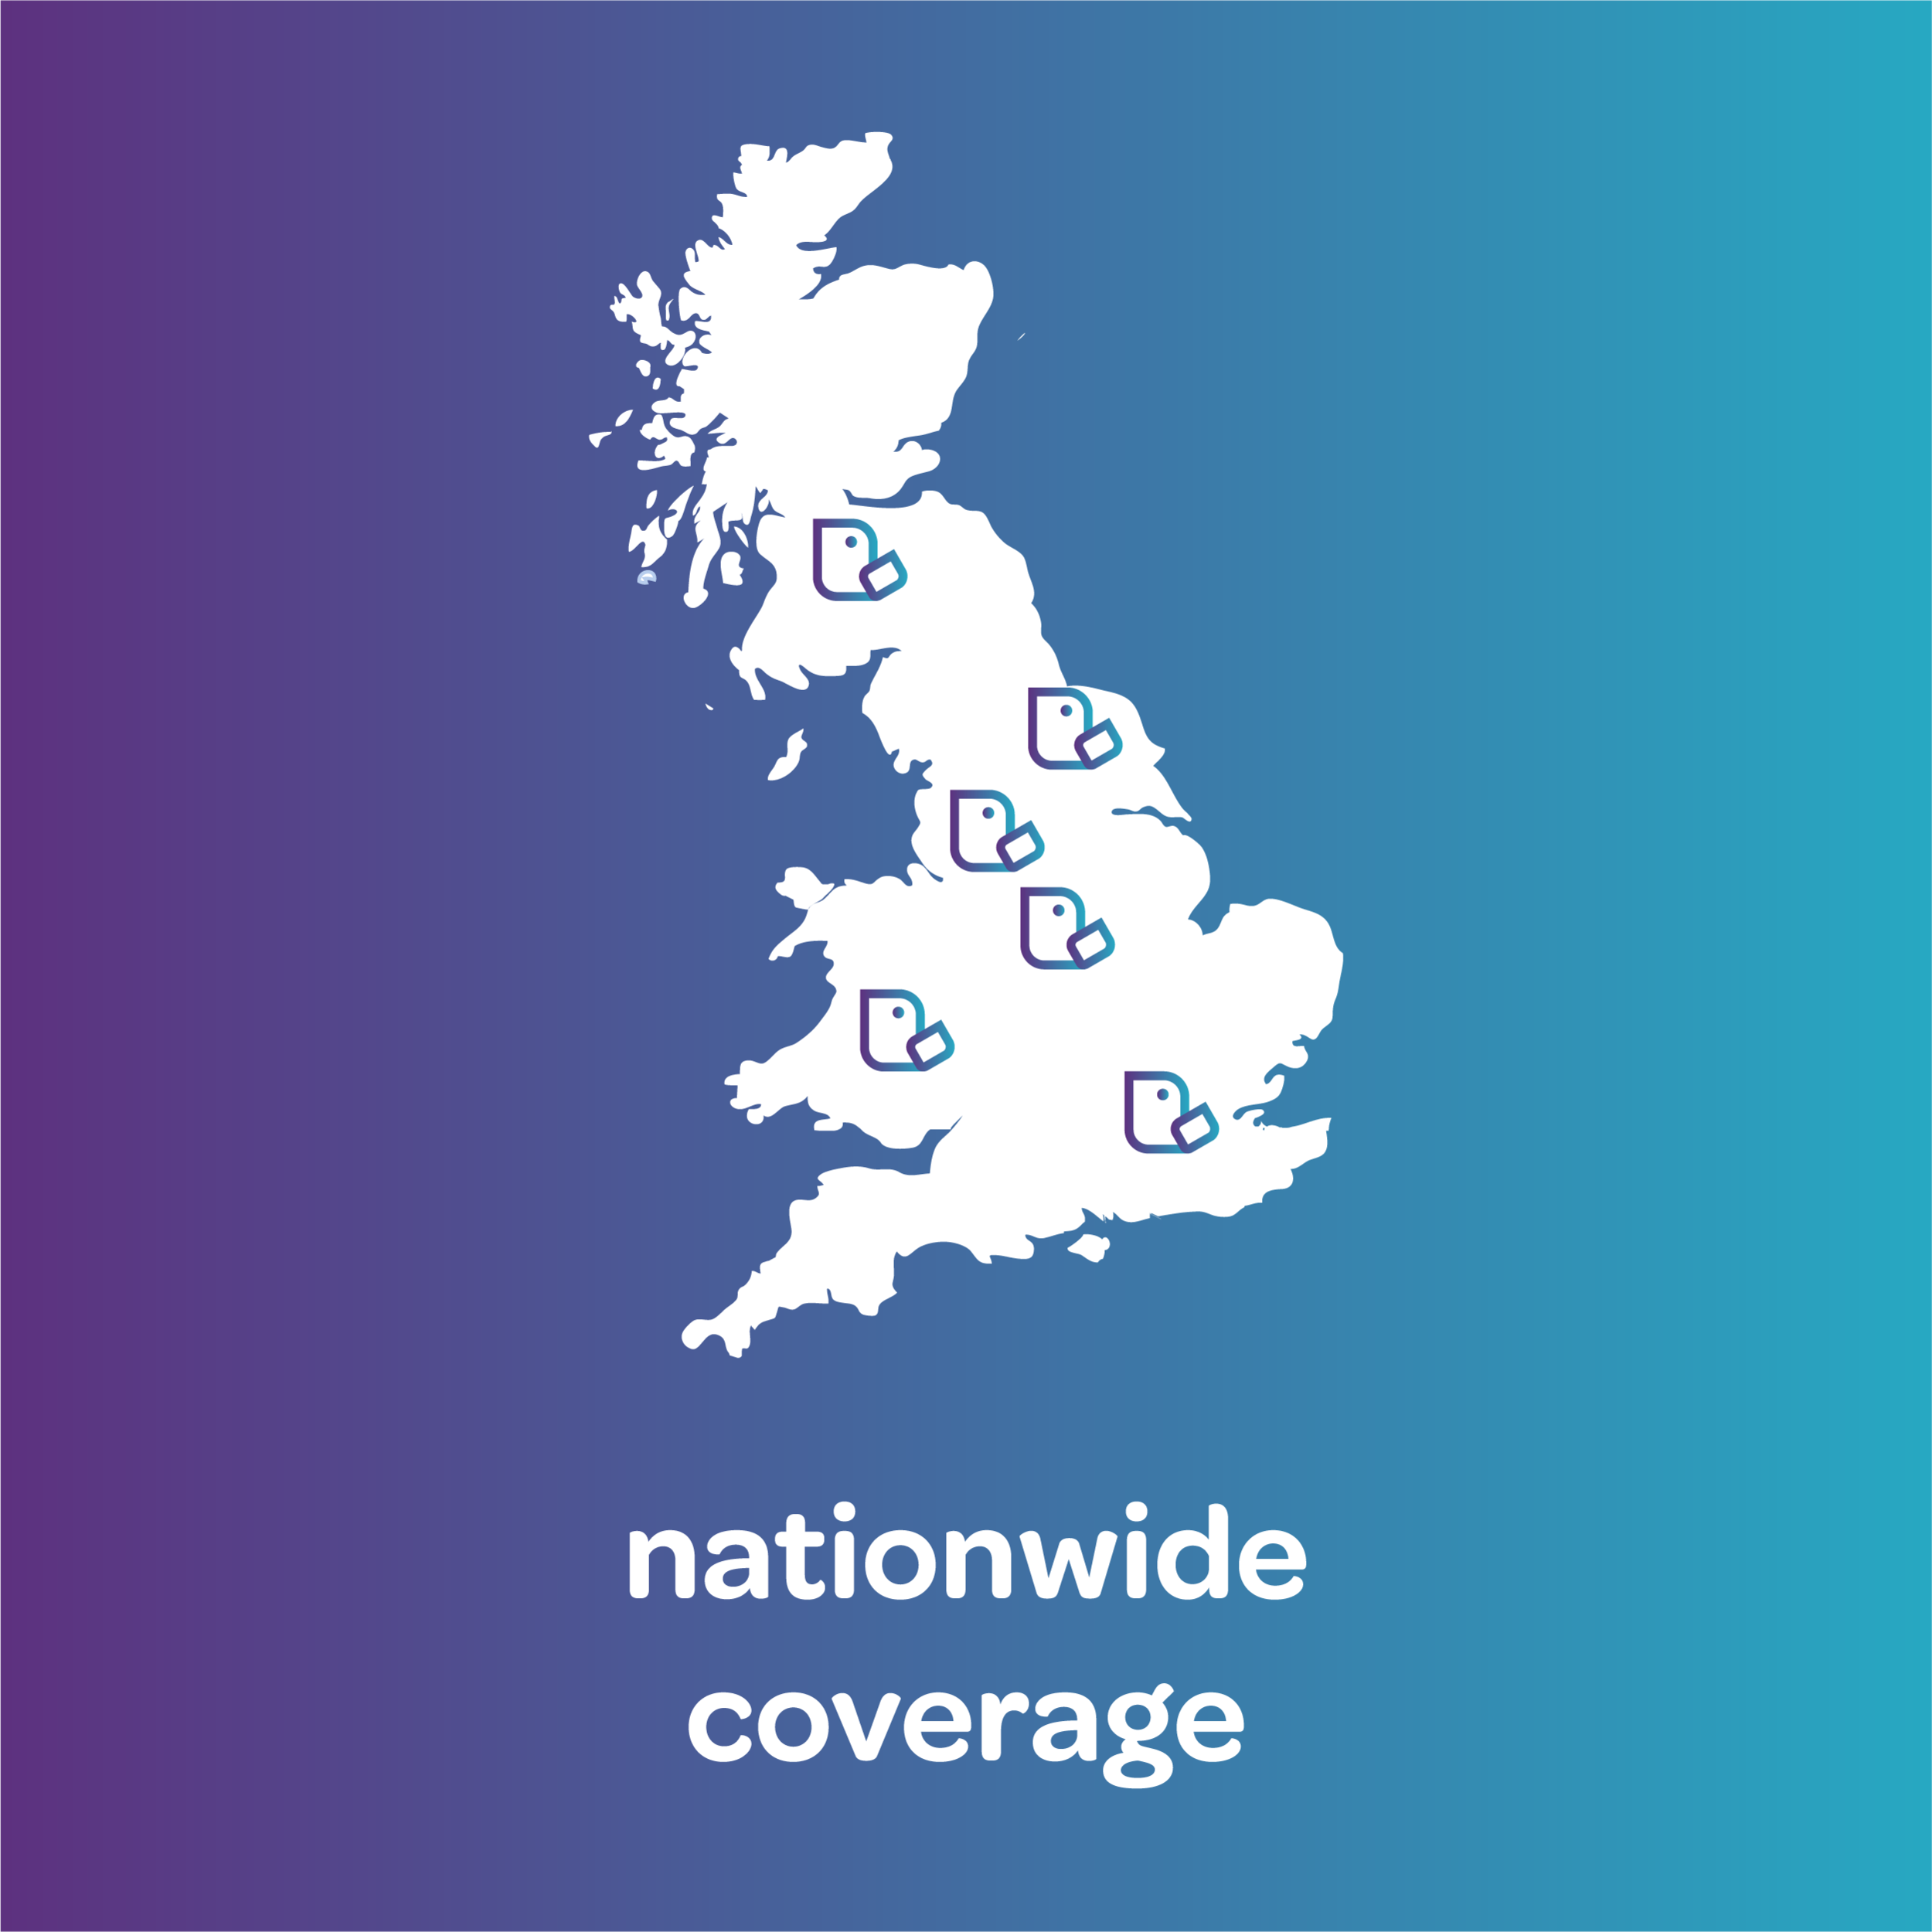 nightingale-nationwide-coverage.png